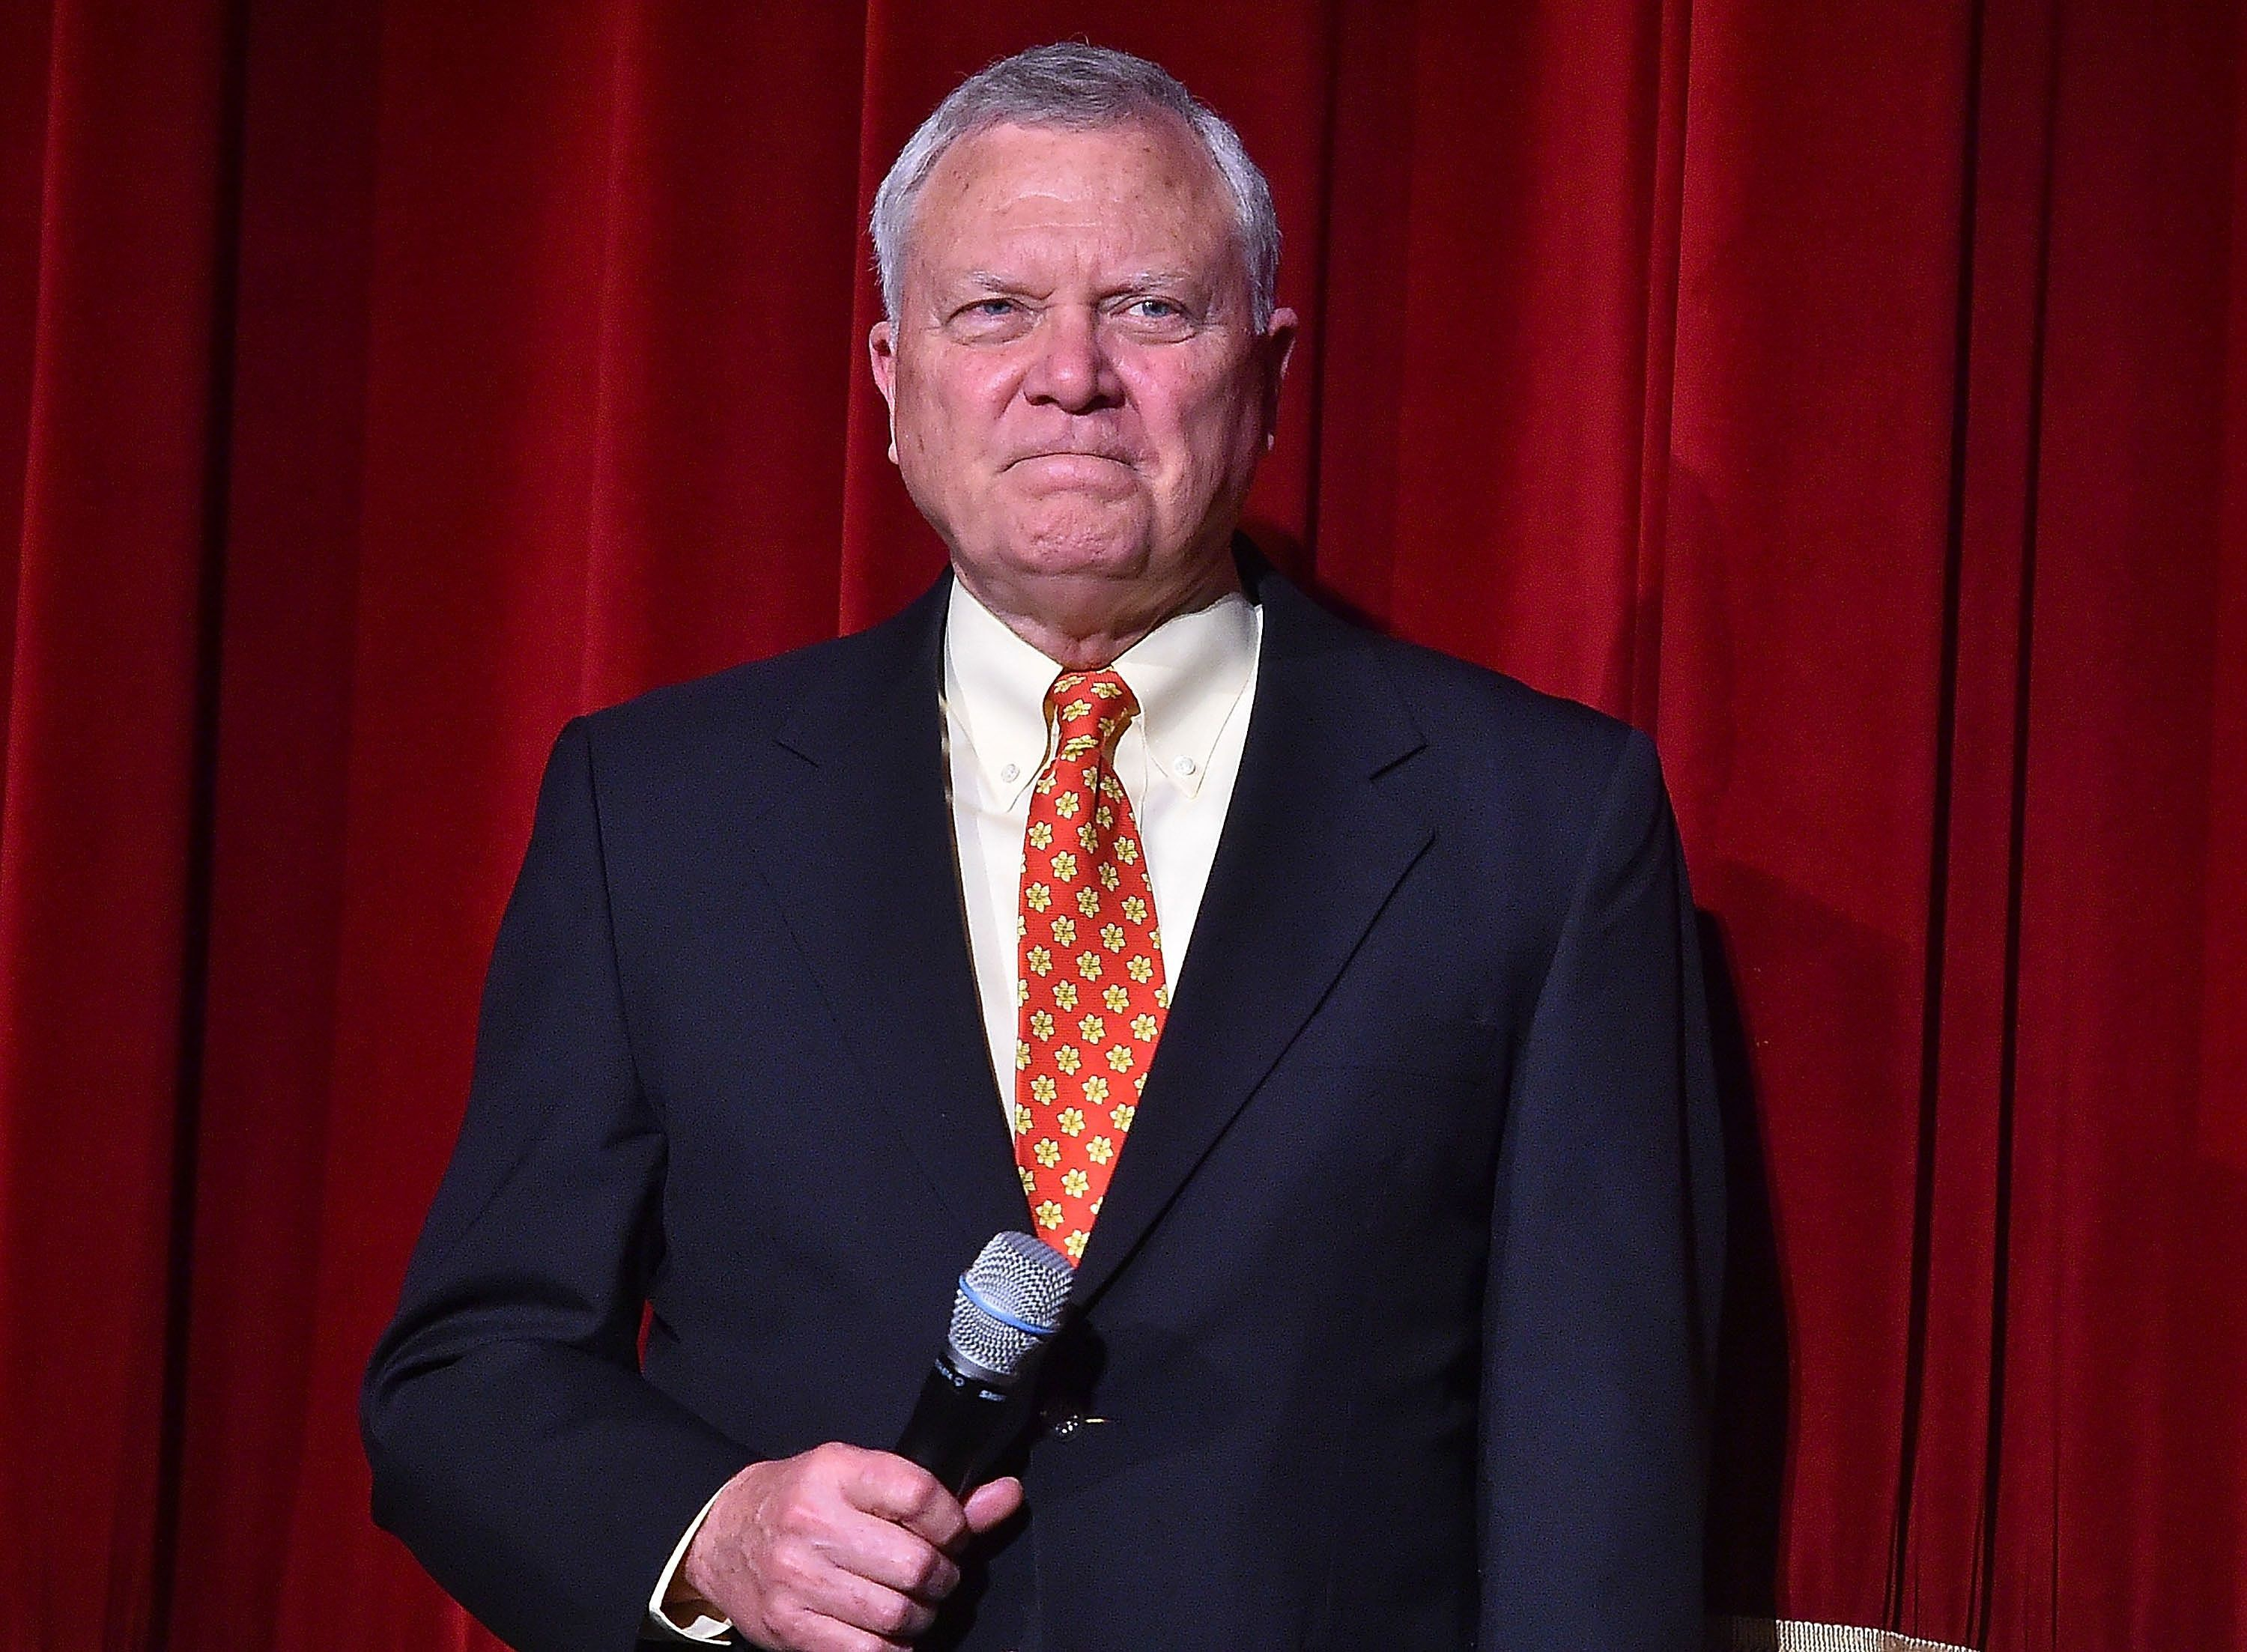 ATLANTA, GA - MAY 01:  (EXCLUSIVE COVERAGE) Georgia Governor Nathan Deal speaks onstage at 'Captain America: Civil War' Atlanta Cast & Filmmakers screening at The Fox Theatre on May 1, 2016 in Atlanta, Georgia.  (Photo by Paras Griffin/Getty Images for Disney)